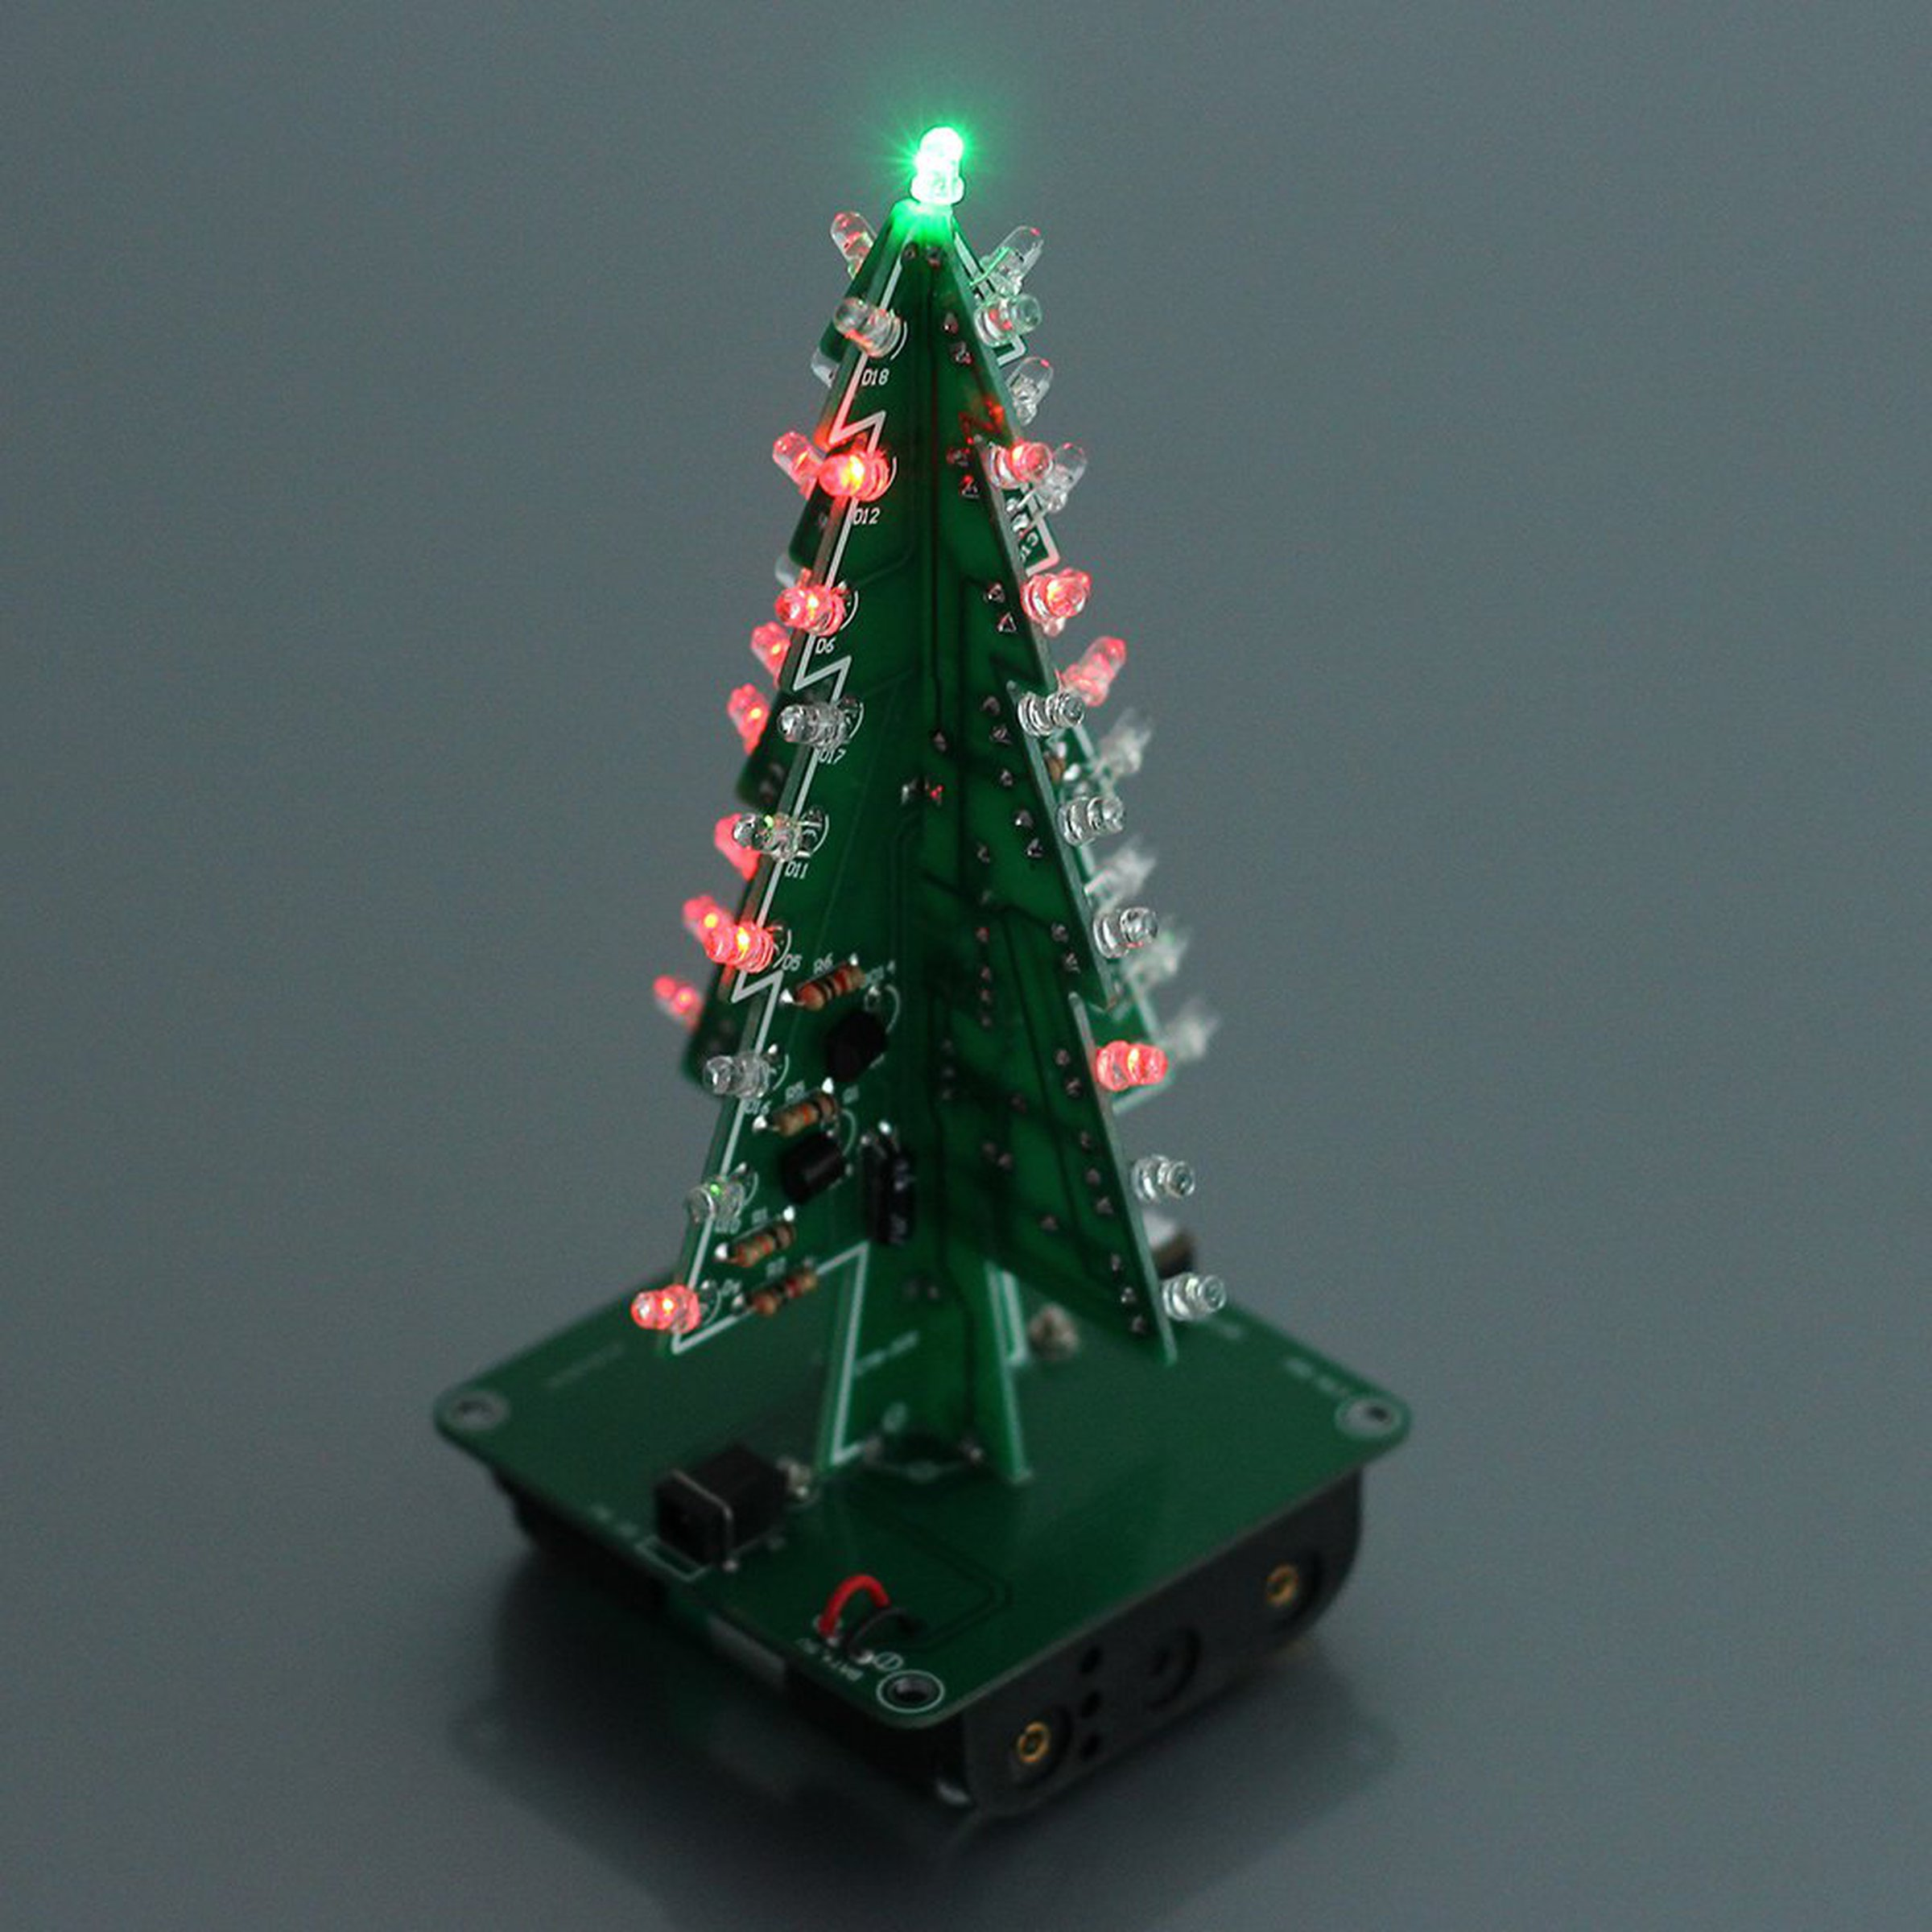 Diy 3d Xmas Tree 7 Color Flash Led Kits7213 From Icstation On Tindie Ledchristmaslightingusingtransistors 2